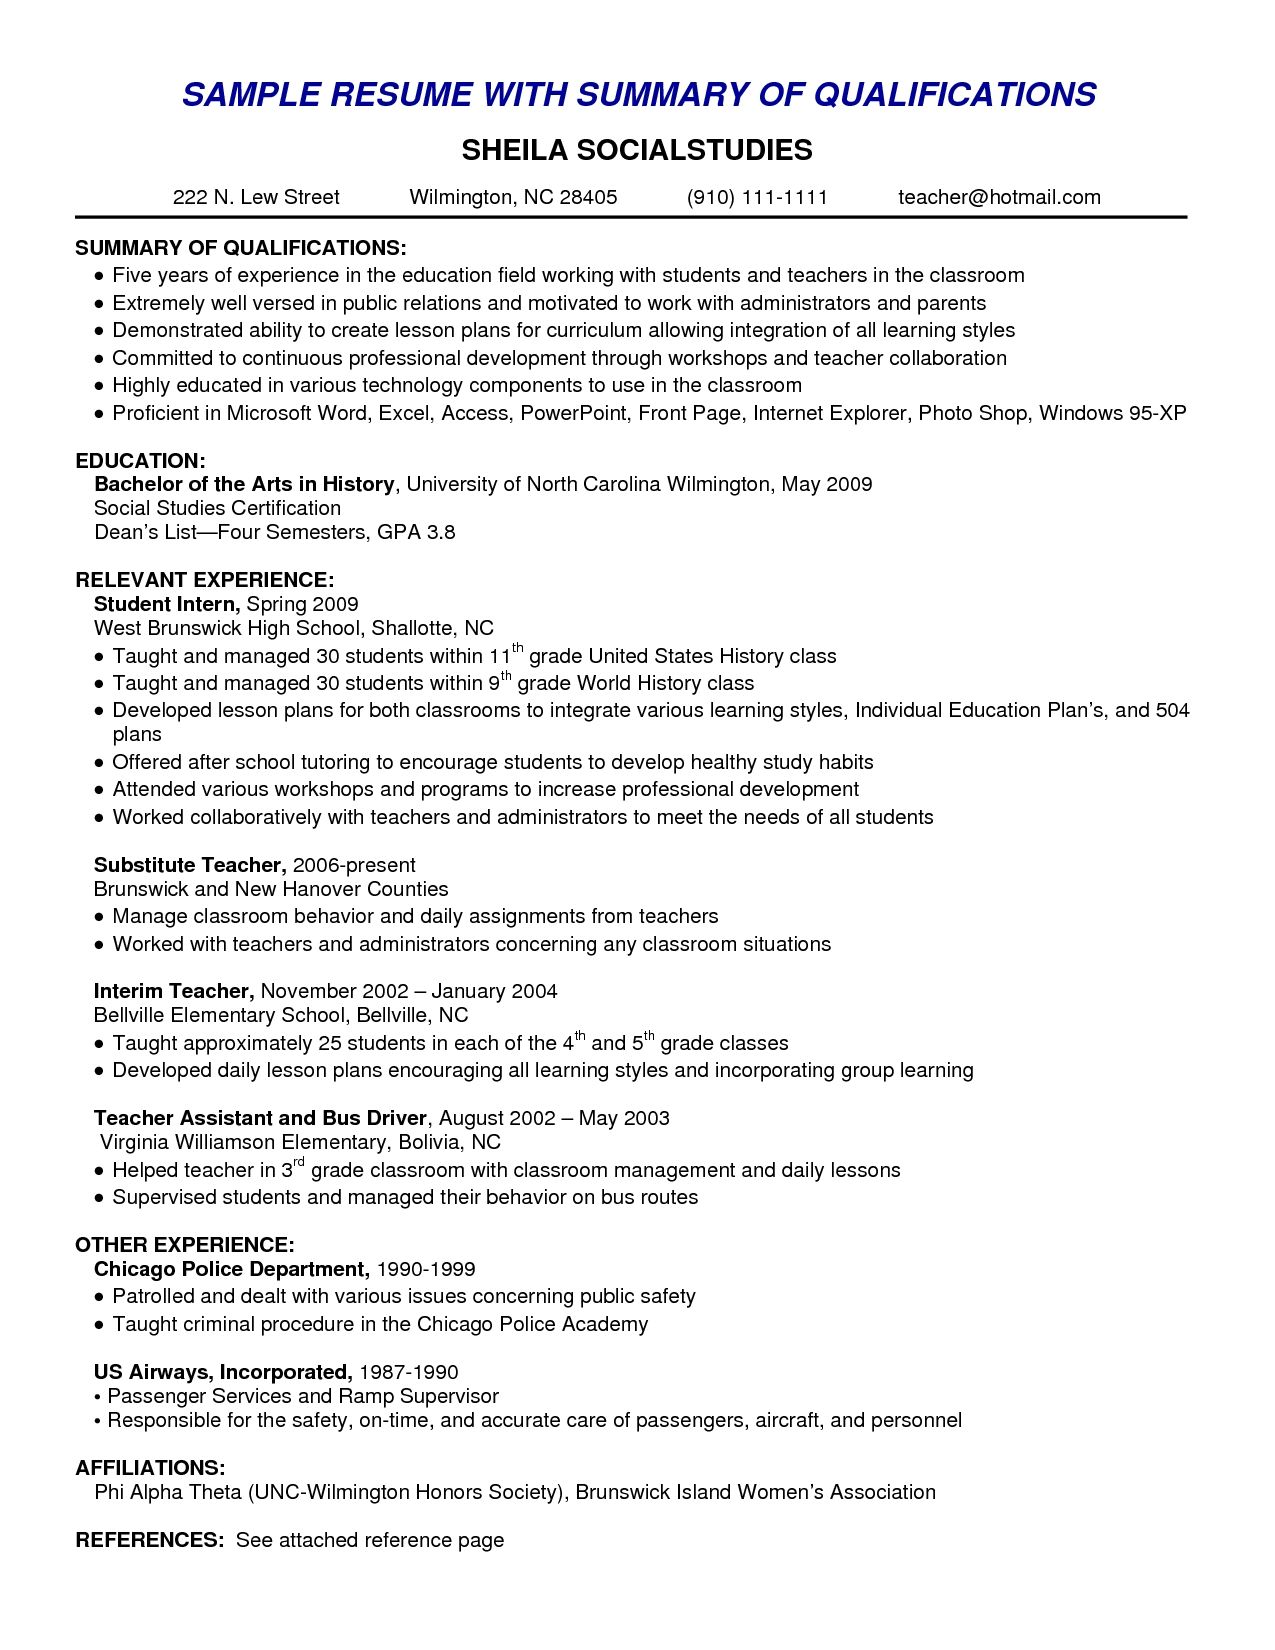 Skill Resume Template Impressive Resume Skills Summary Examples Example Of Skills Summary For